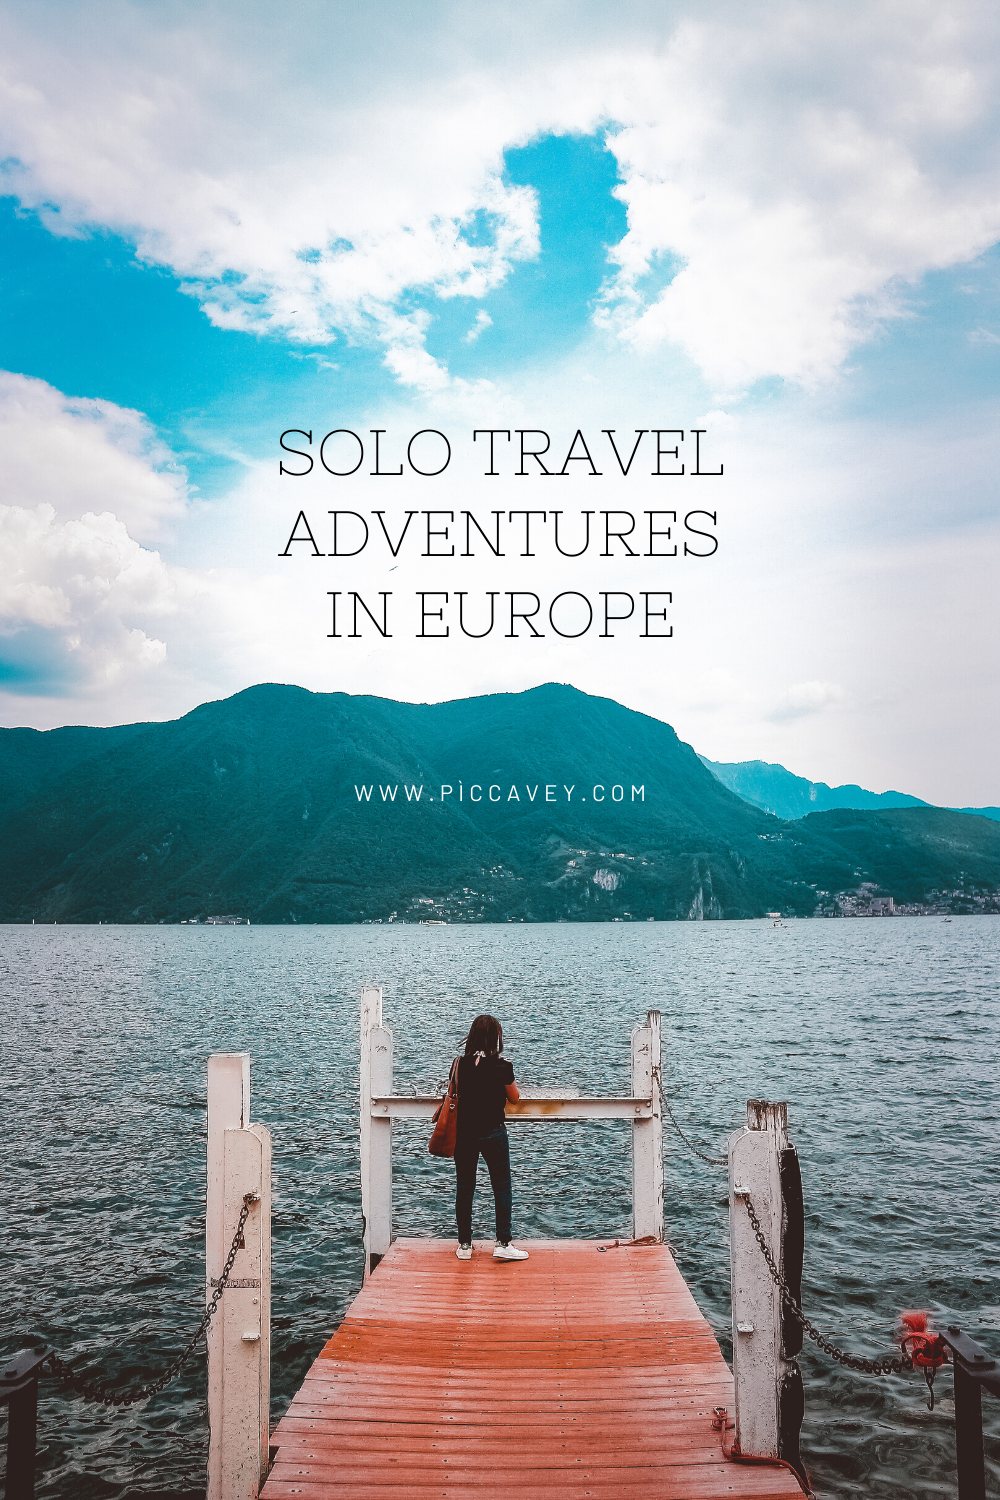 Solo travel in Europe